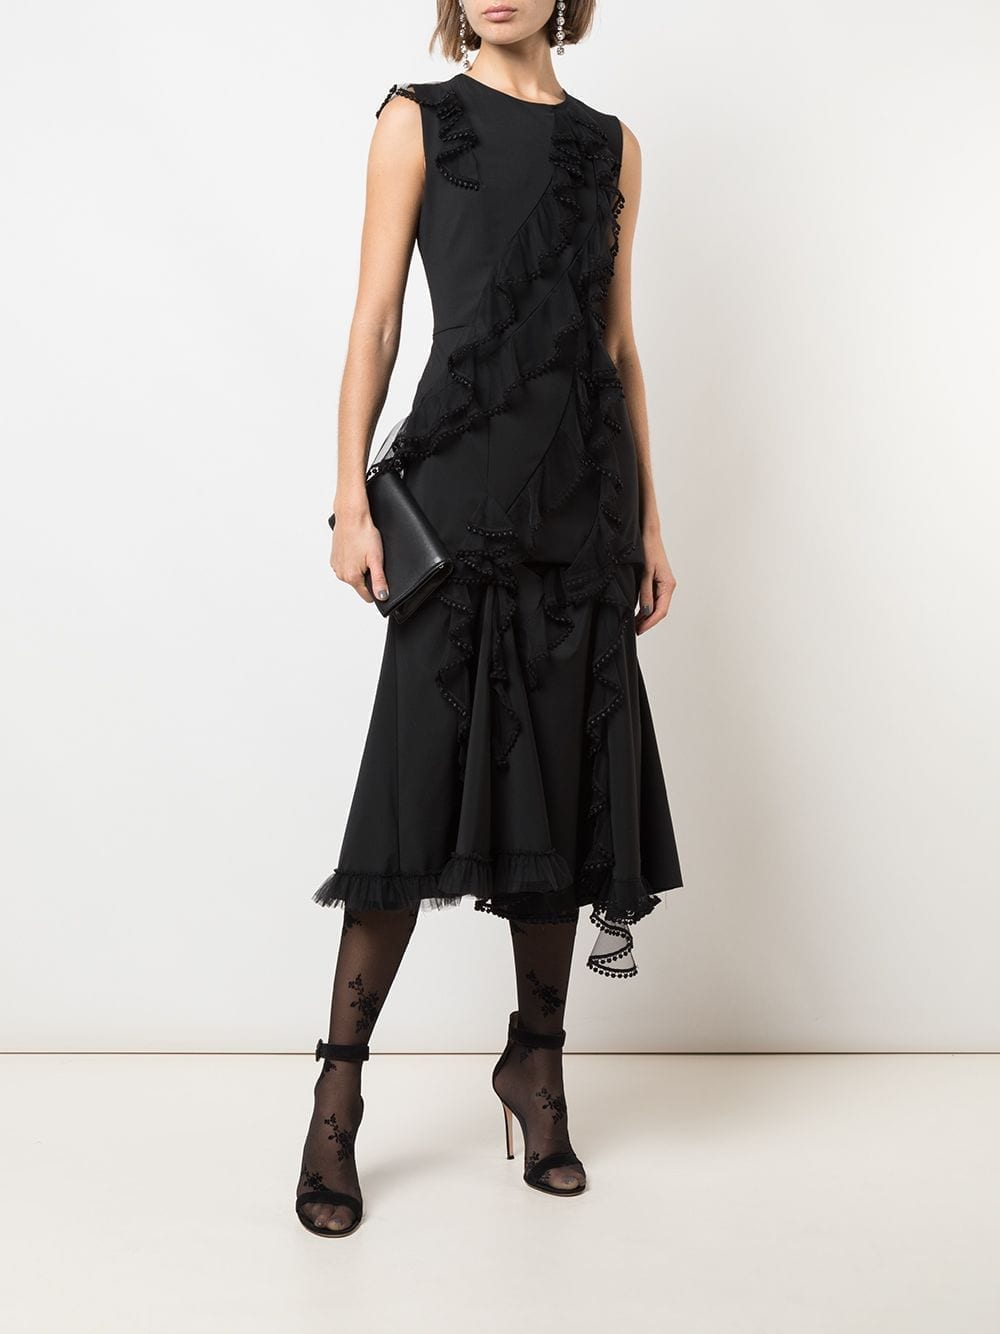 ACT N°1 Ruffle Trim Dress